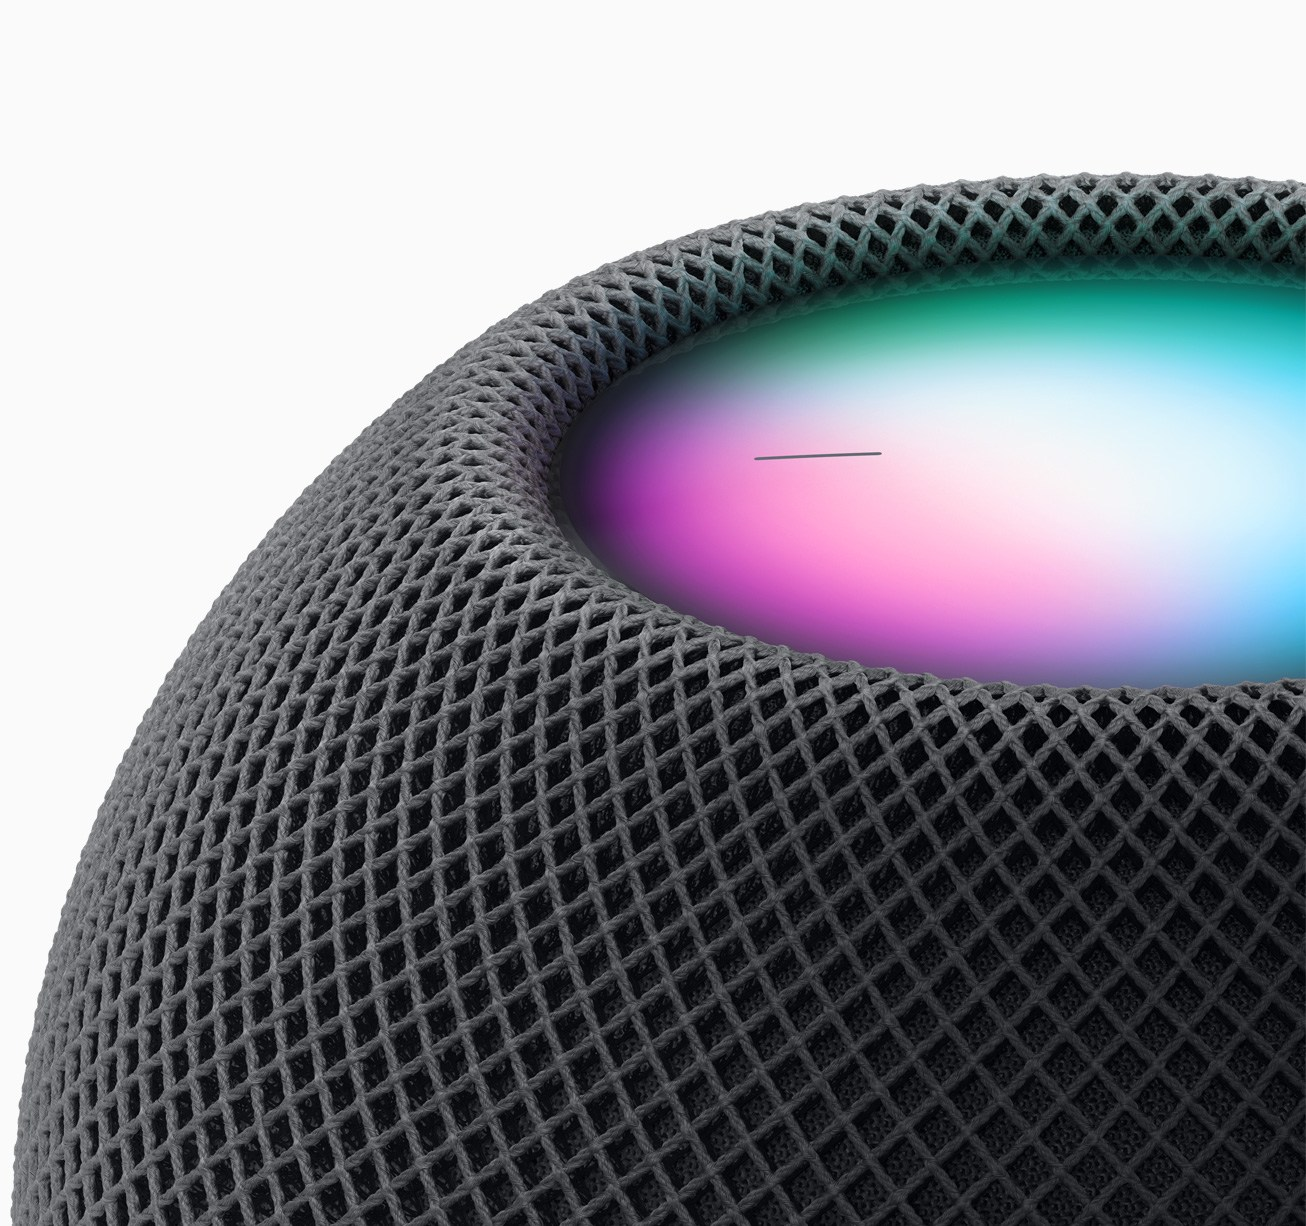 The HomePod mini is wrapped in an acoustic fabric. Source: Apple.